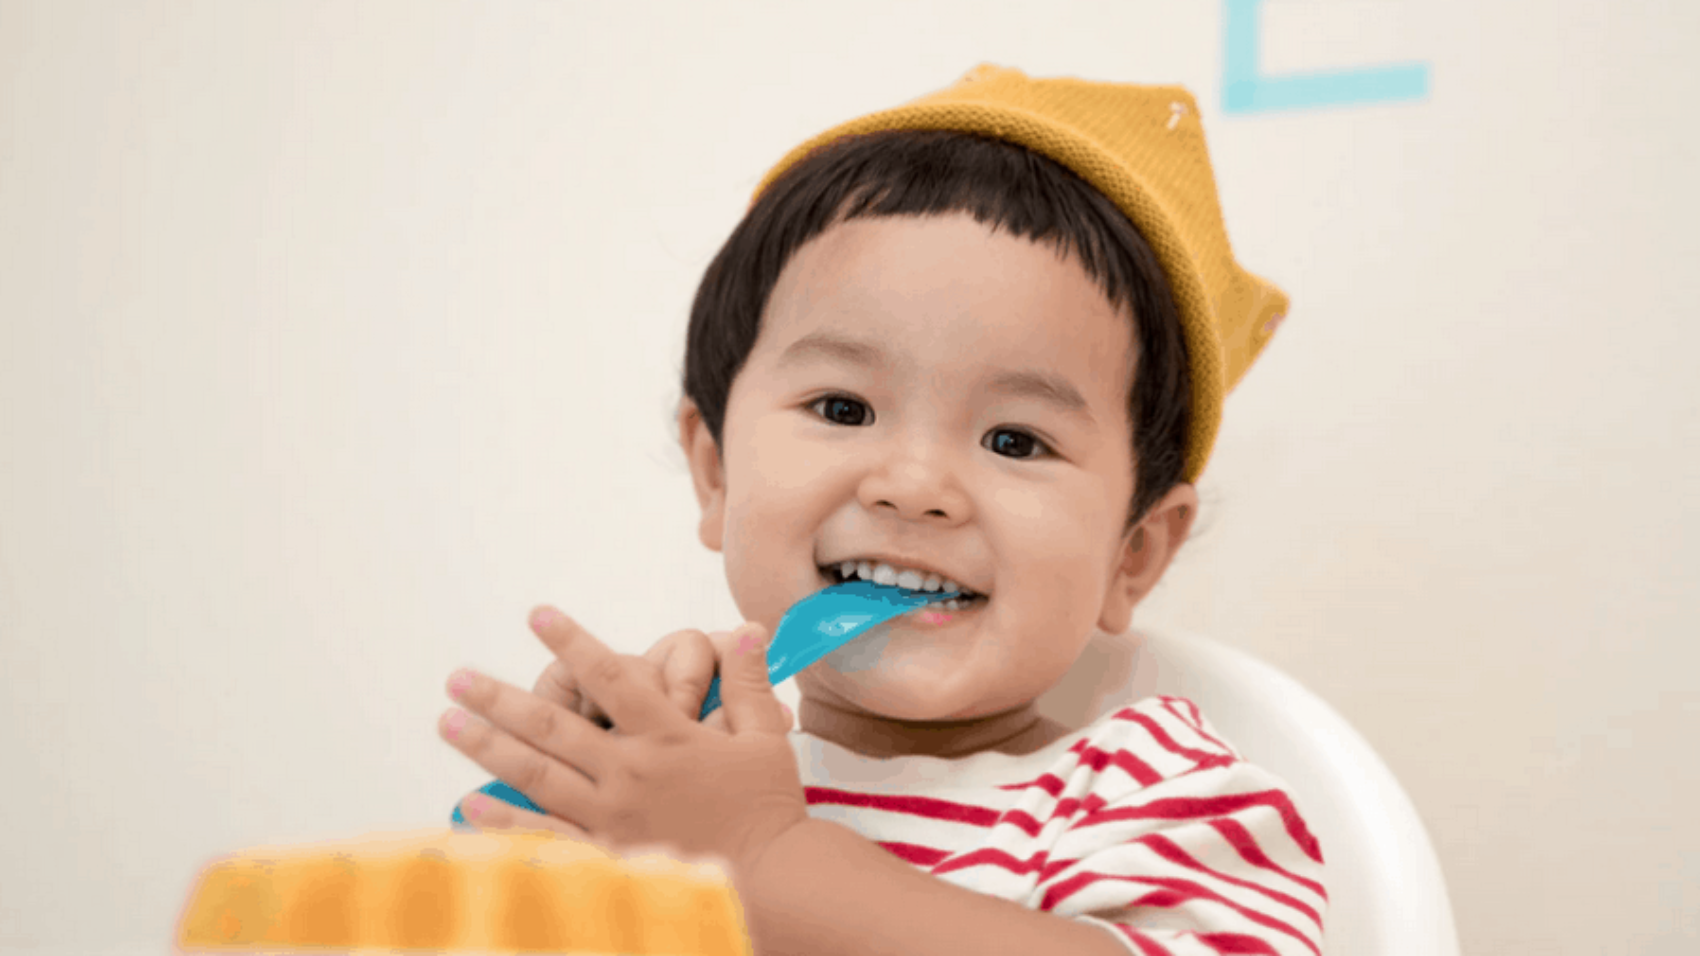 4 Ways to Keep Track of Your Children's Safety and Comfort at Home